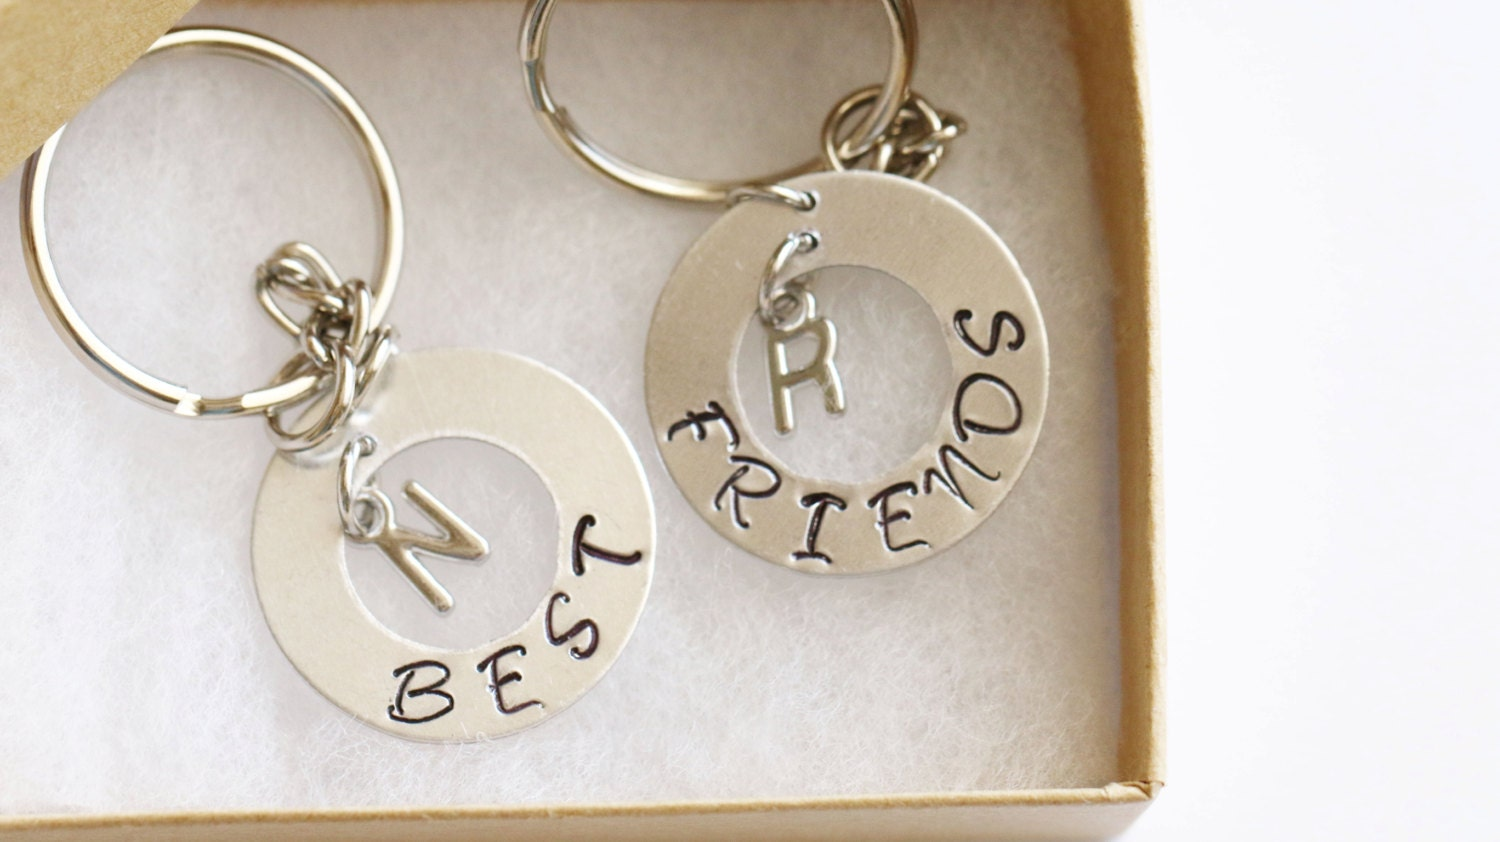 Best Friend Gift Keychain Personalized Gifts For Best Friend